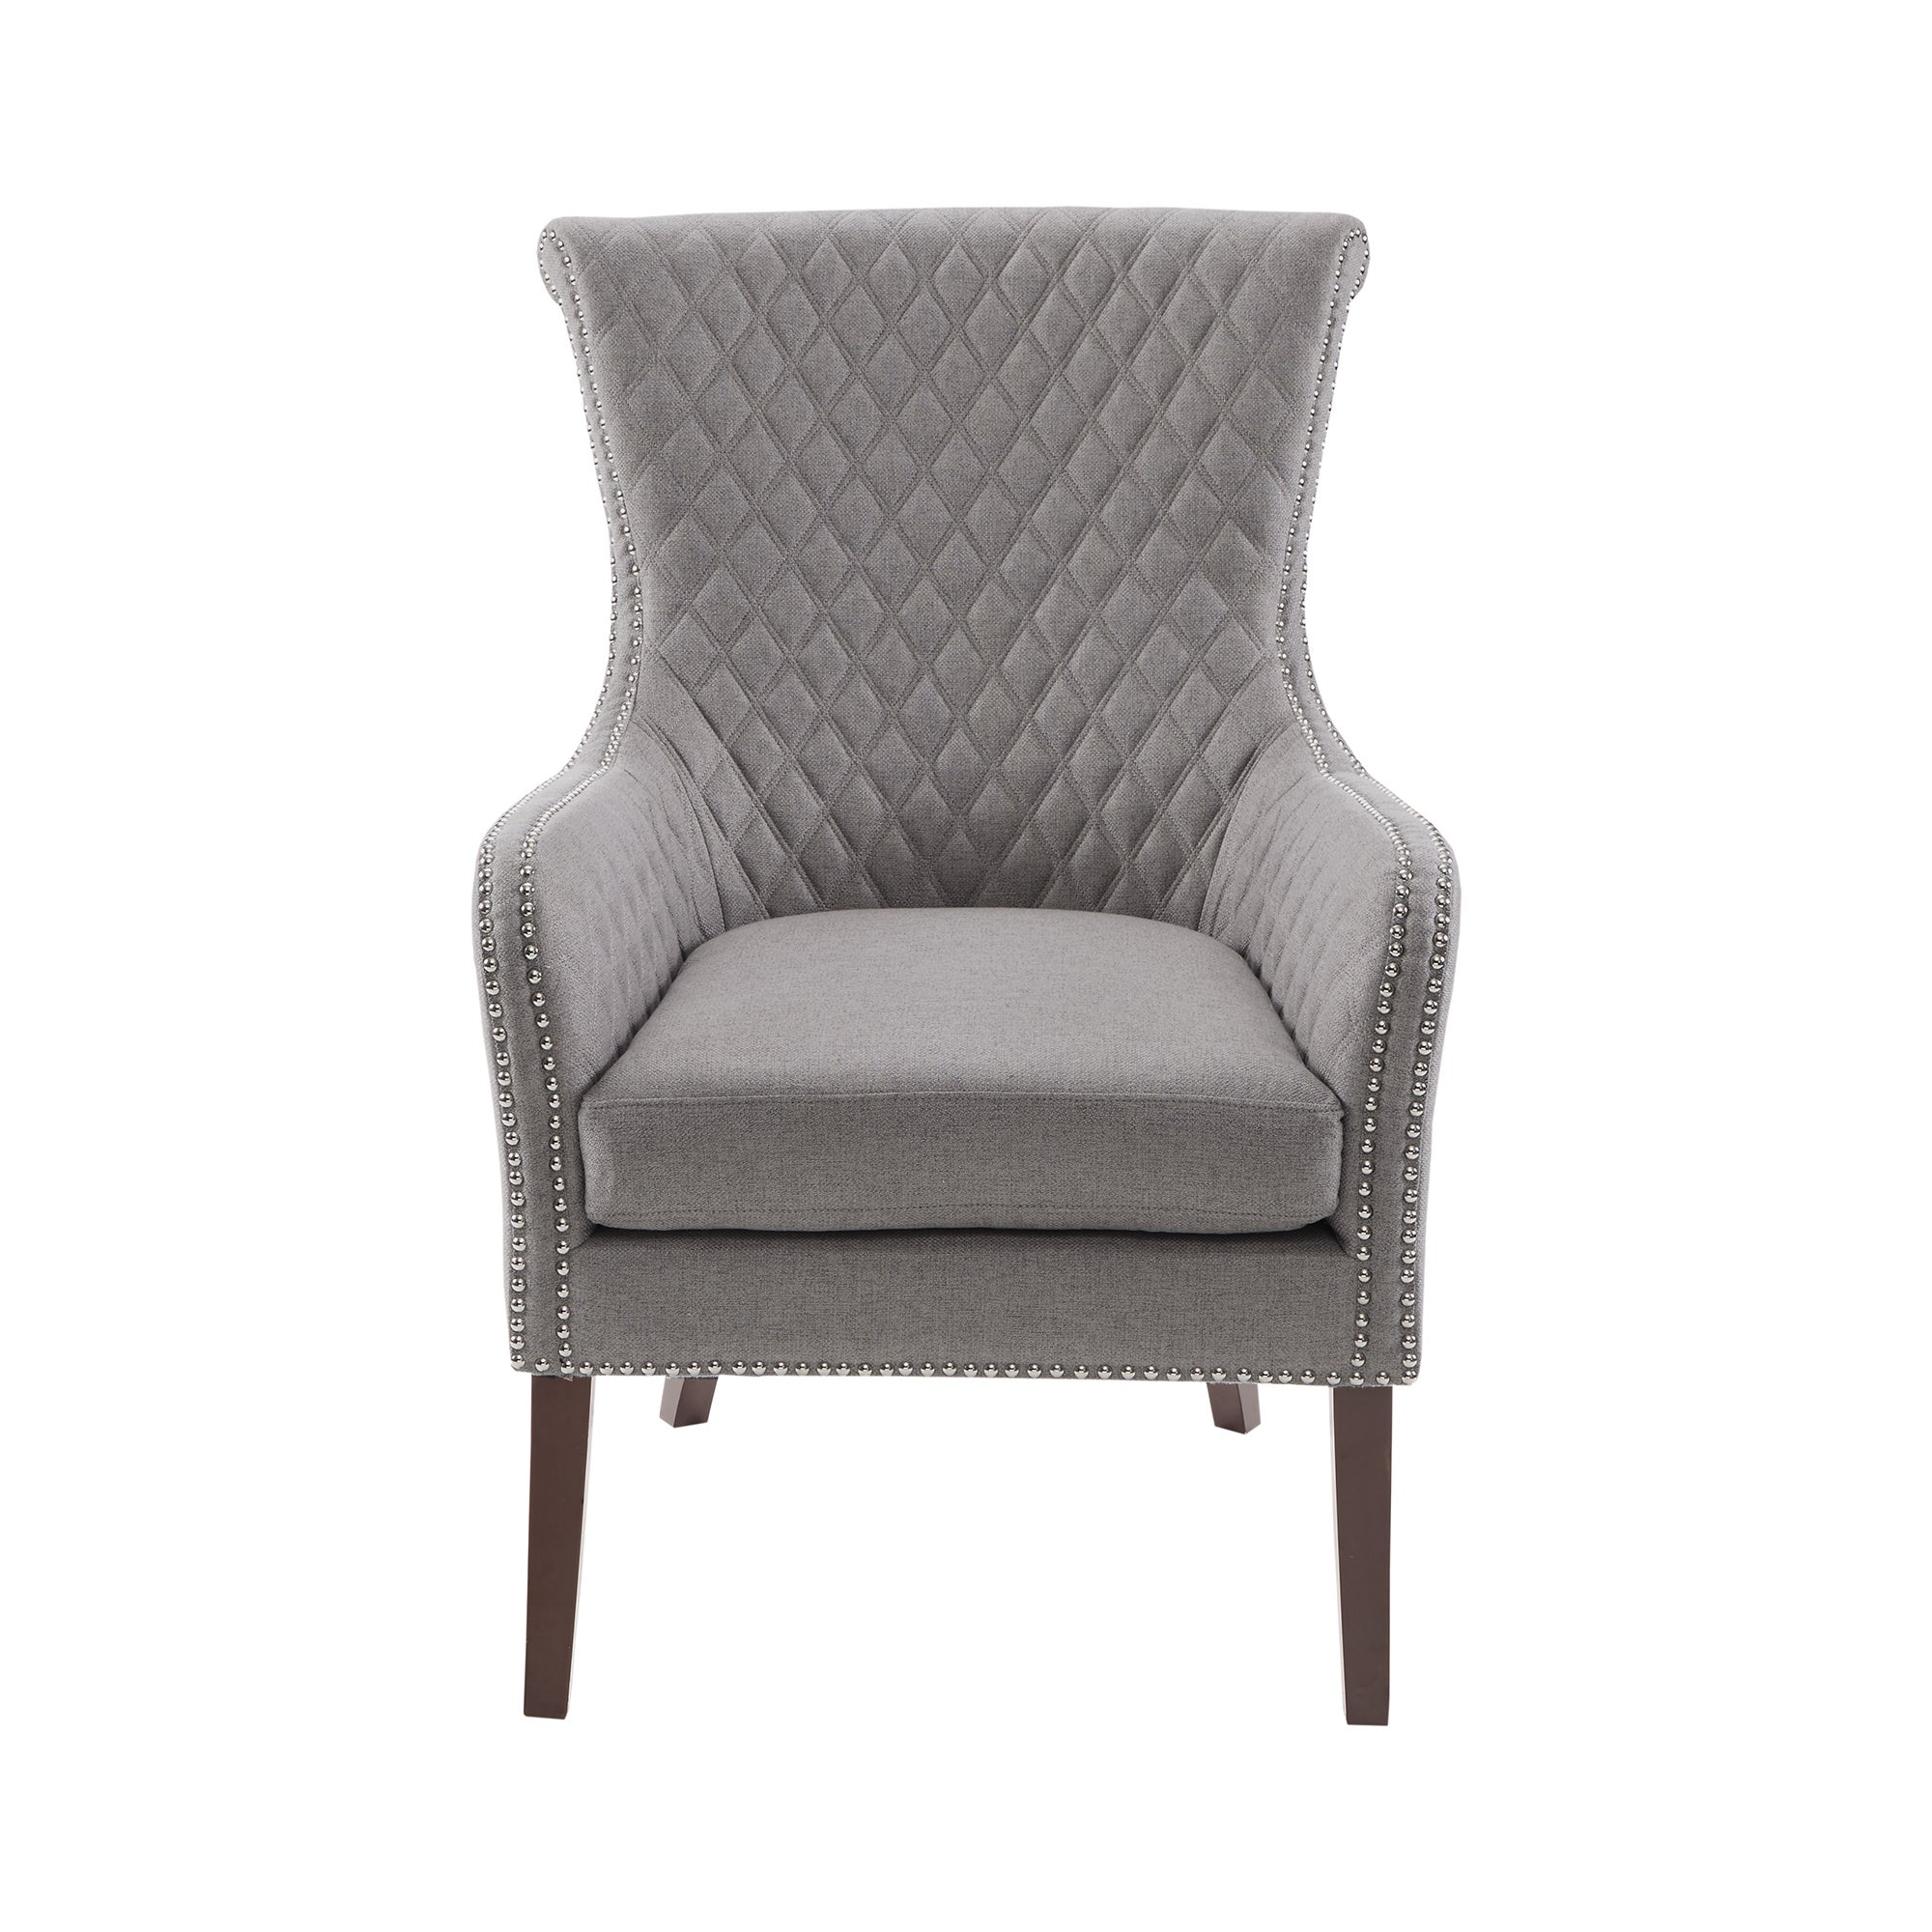 Madison Park Lea Light Grey Accent Chair   Free Shipping Today   Overstock    26359812